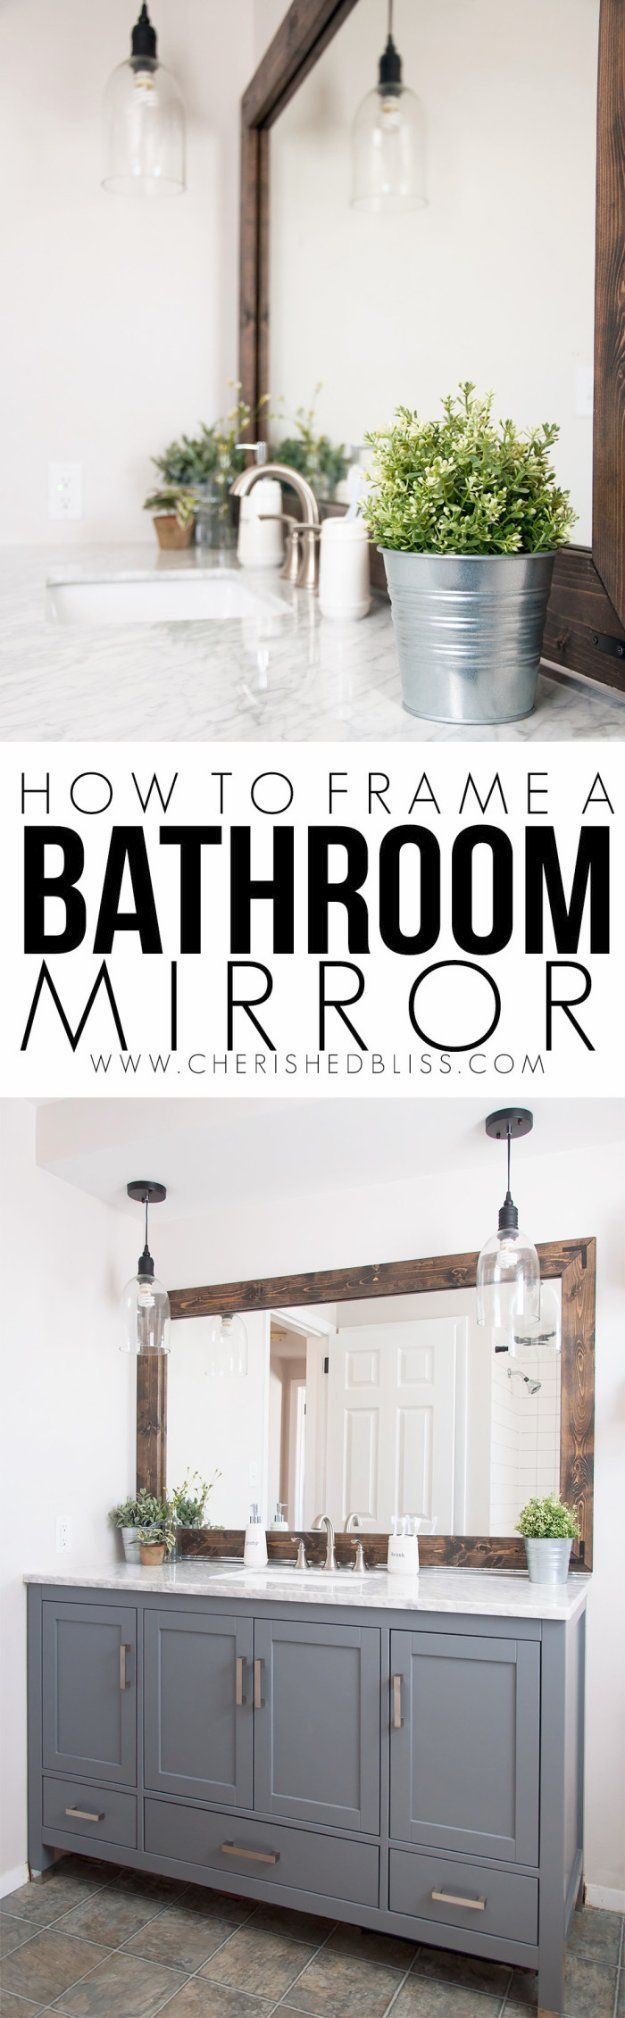 25 best ideas about decorating bathrooms on pinterest restroom ideas guest bathroom - Do it yourself home decorating ideas on a budget ...